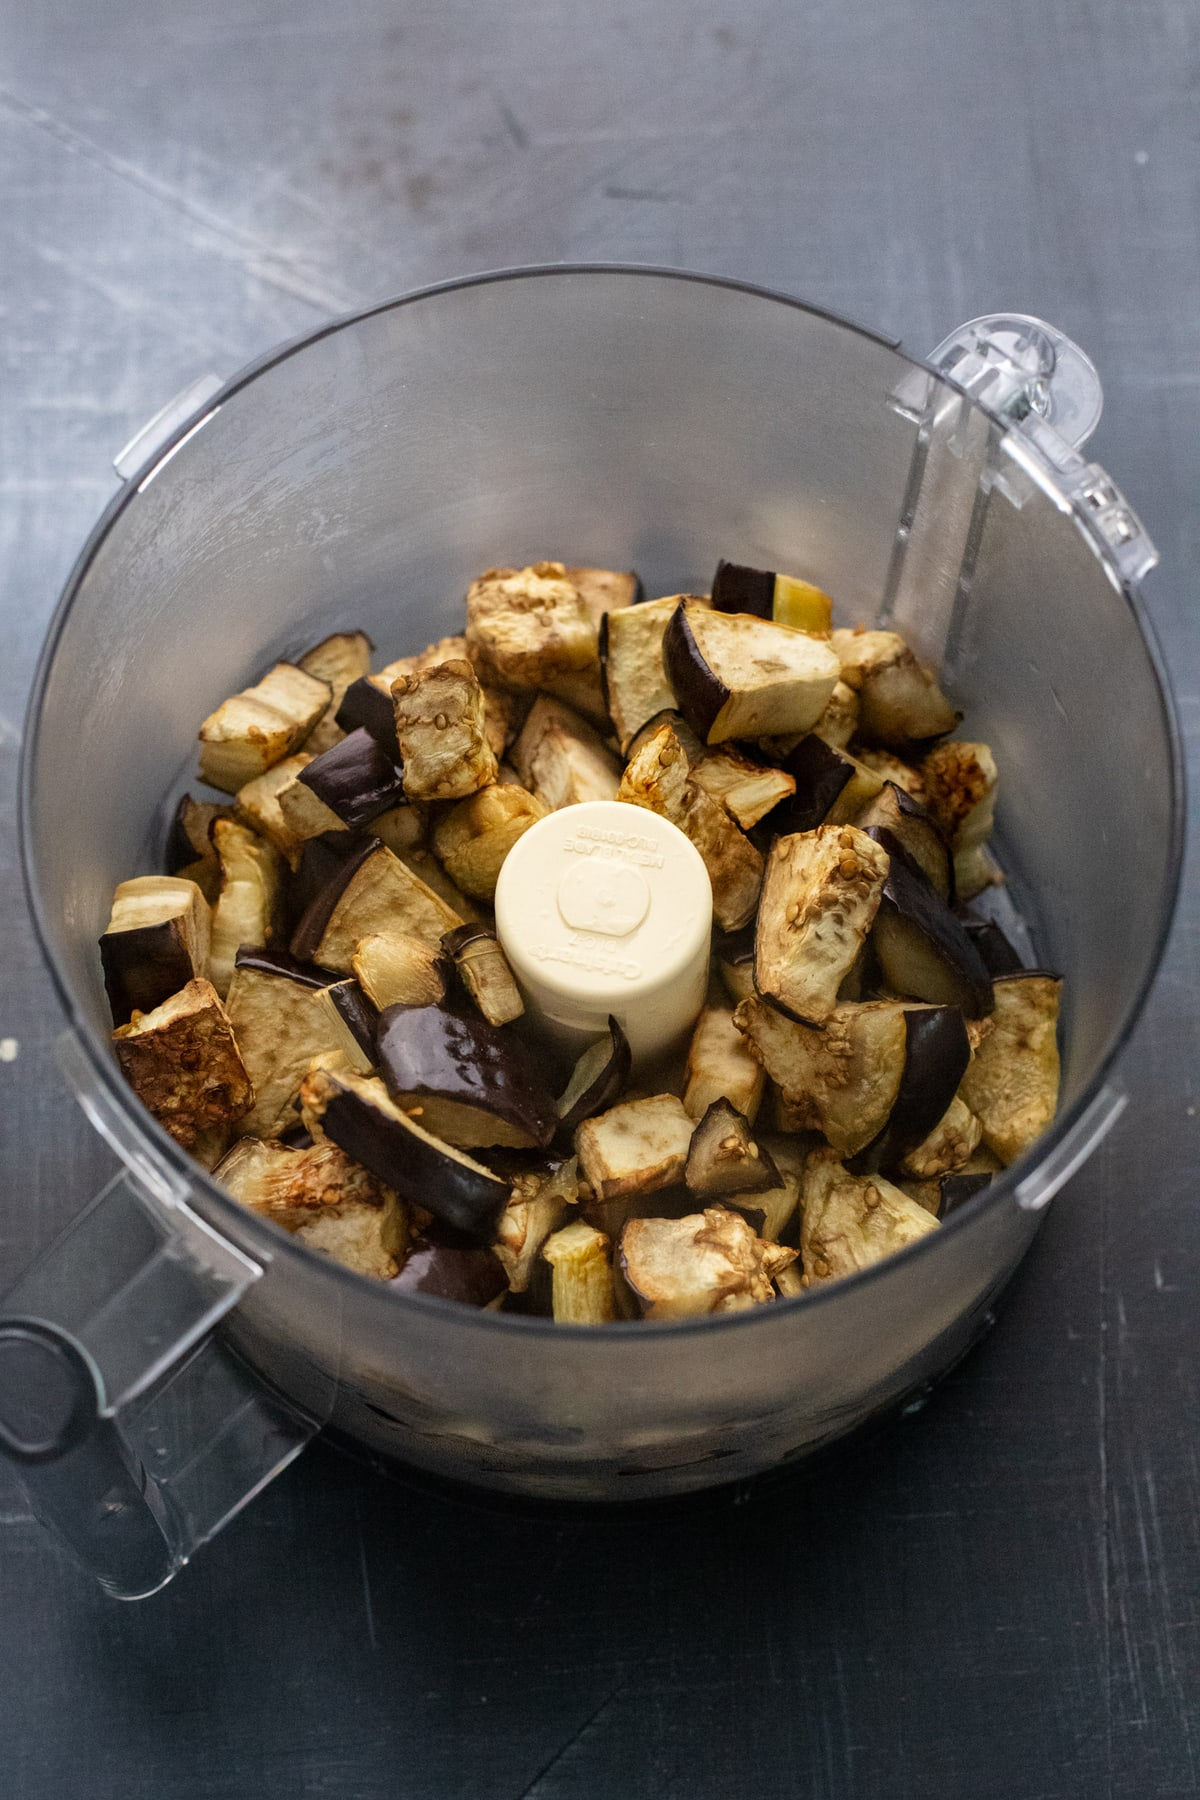 Food processor with eggplant pieces in it.